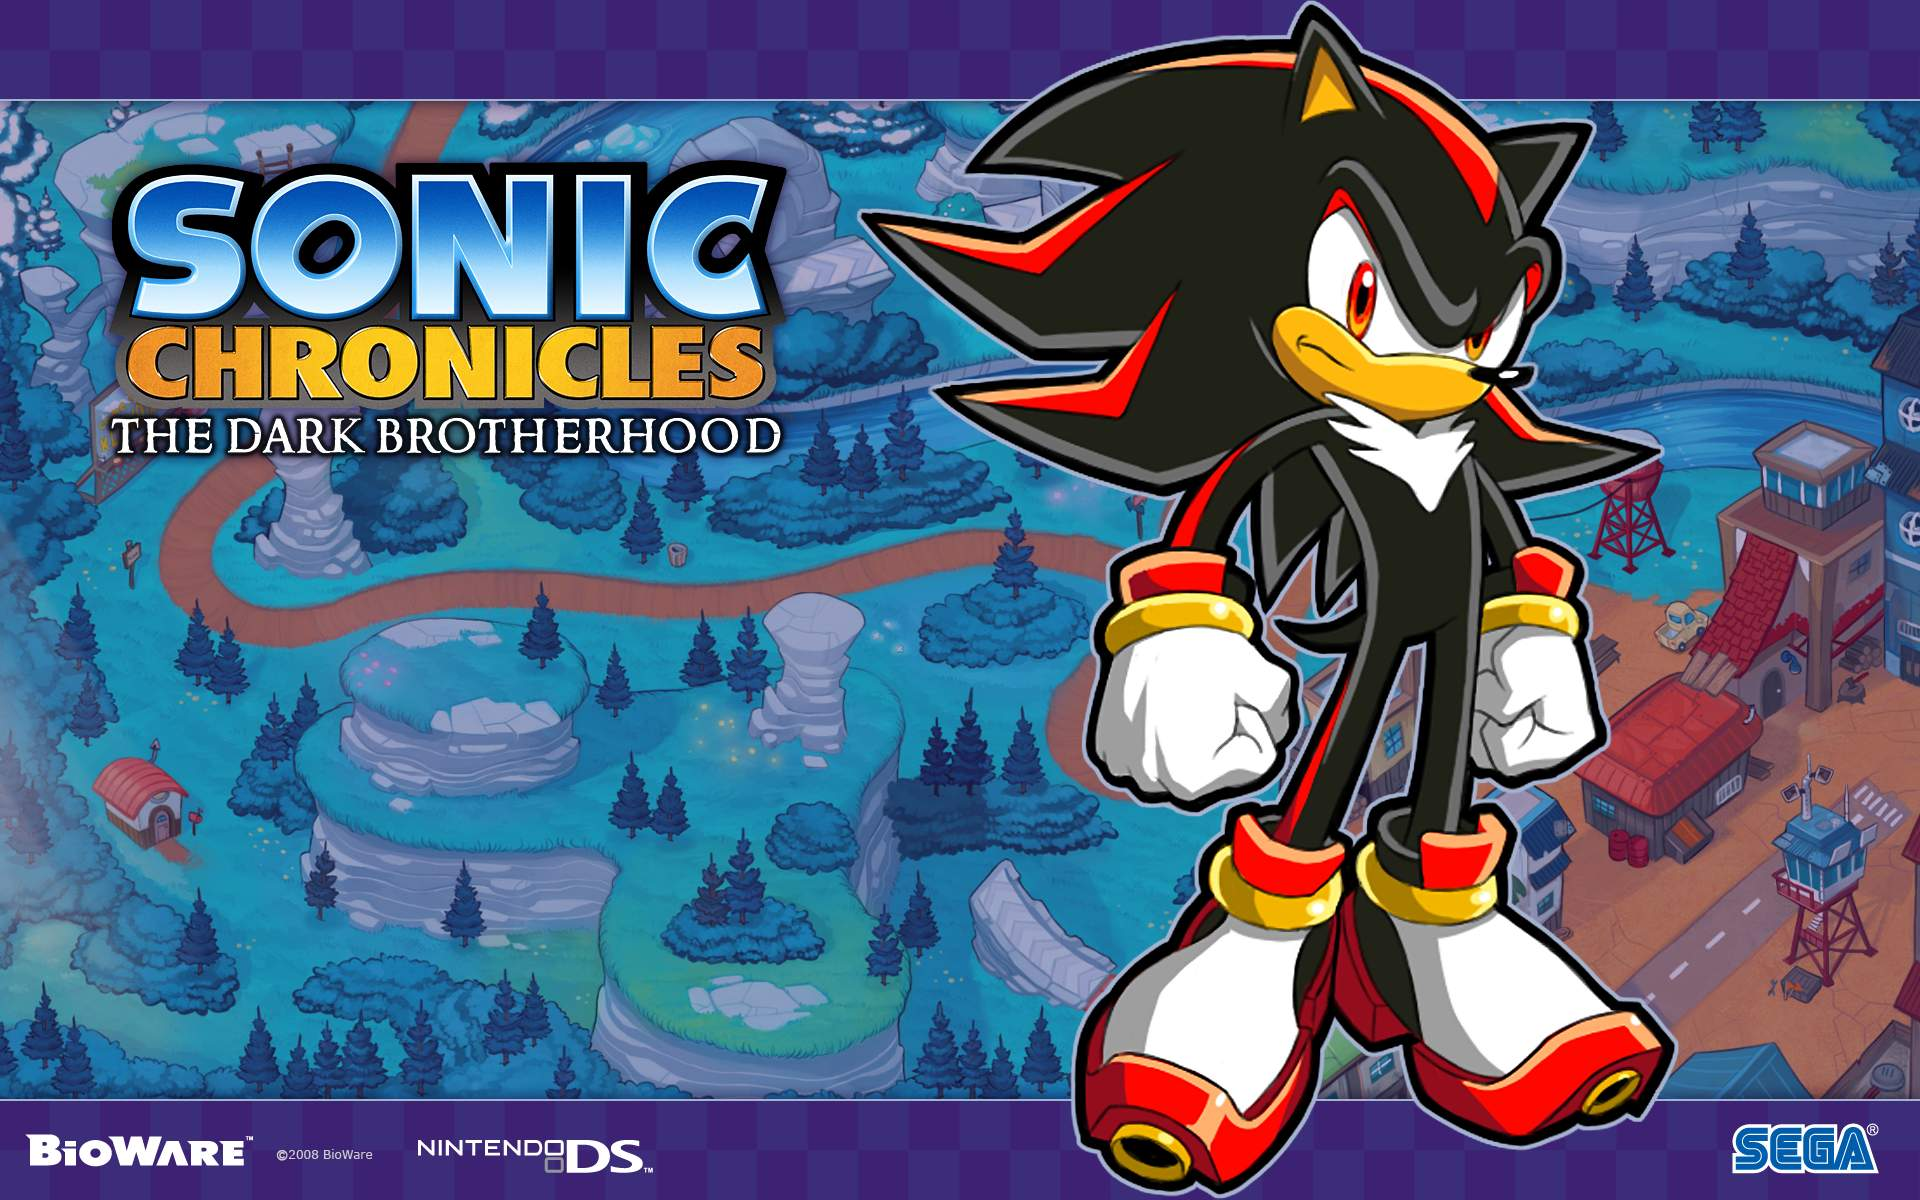 Wallpapers – Sonic Chronicles | Last Minute Continue